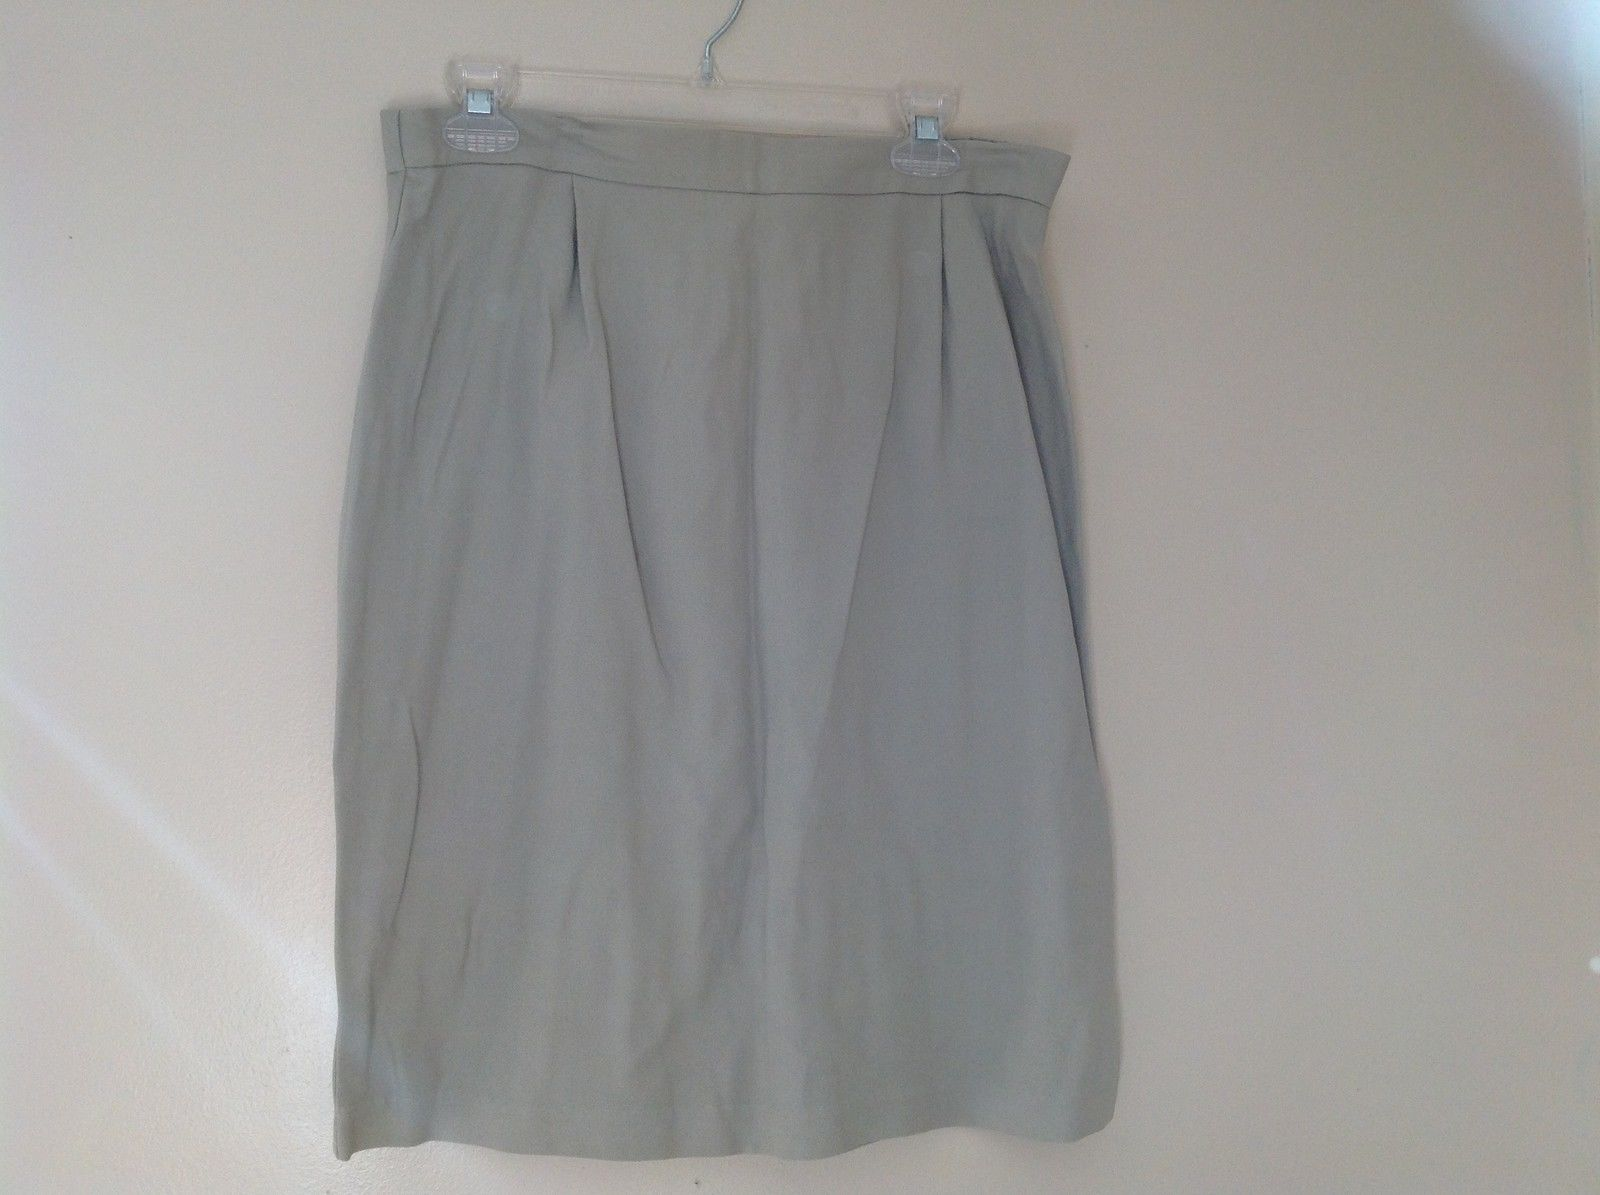 Womes Pale Green Med Length Pencil Skirt Size14